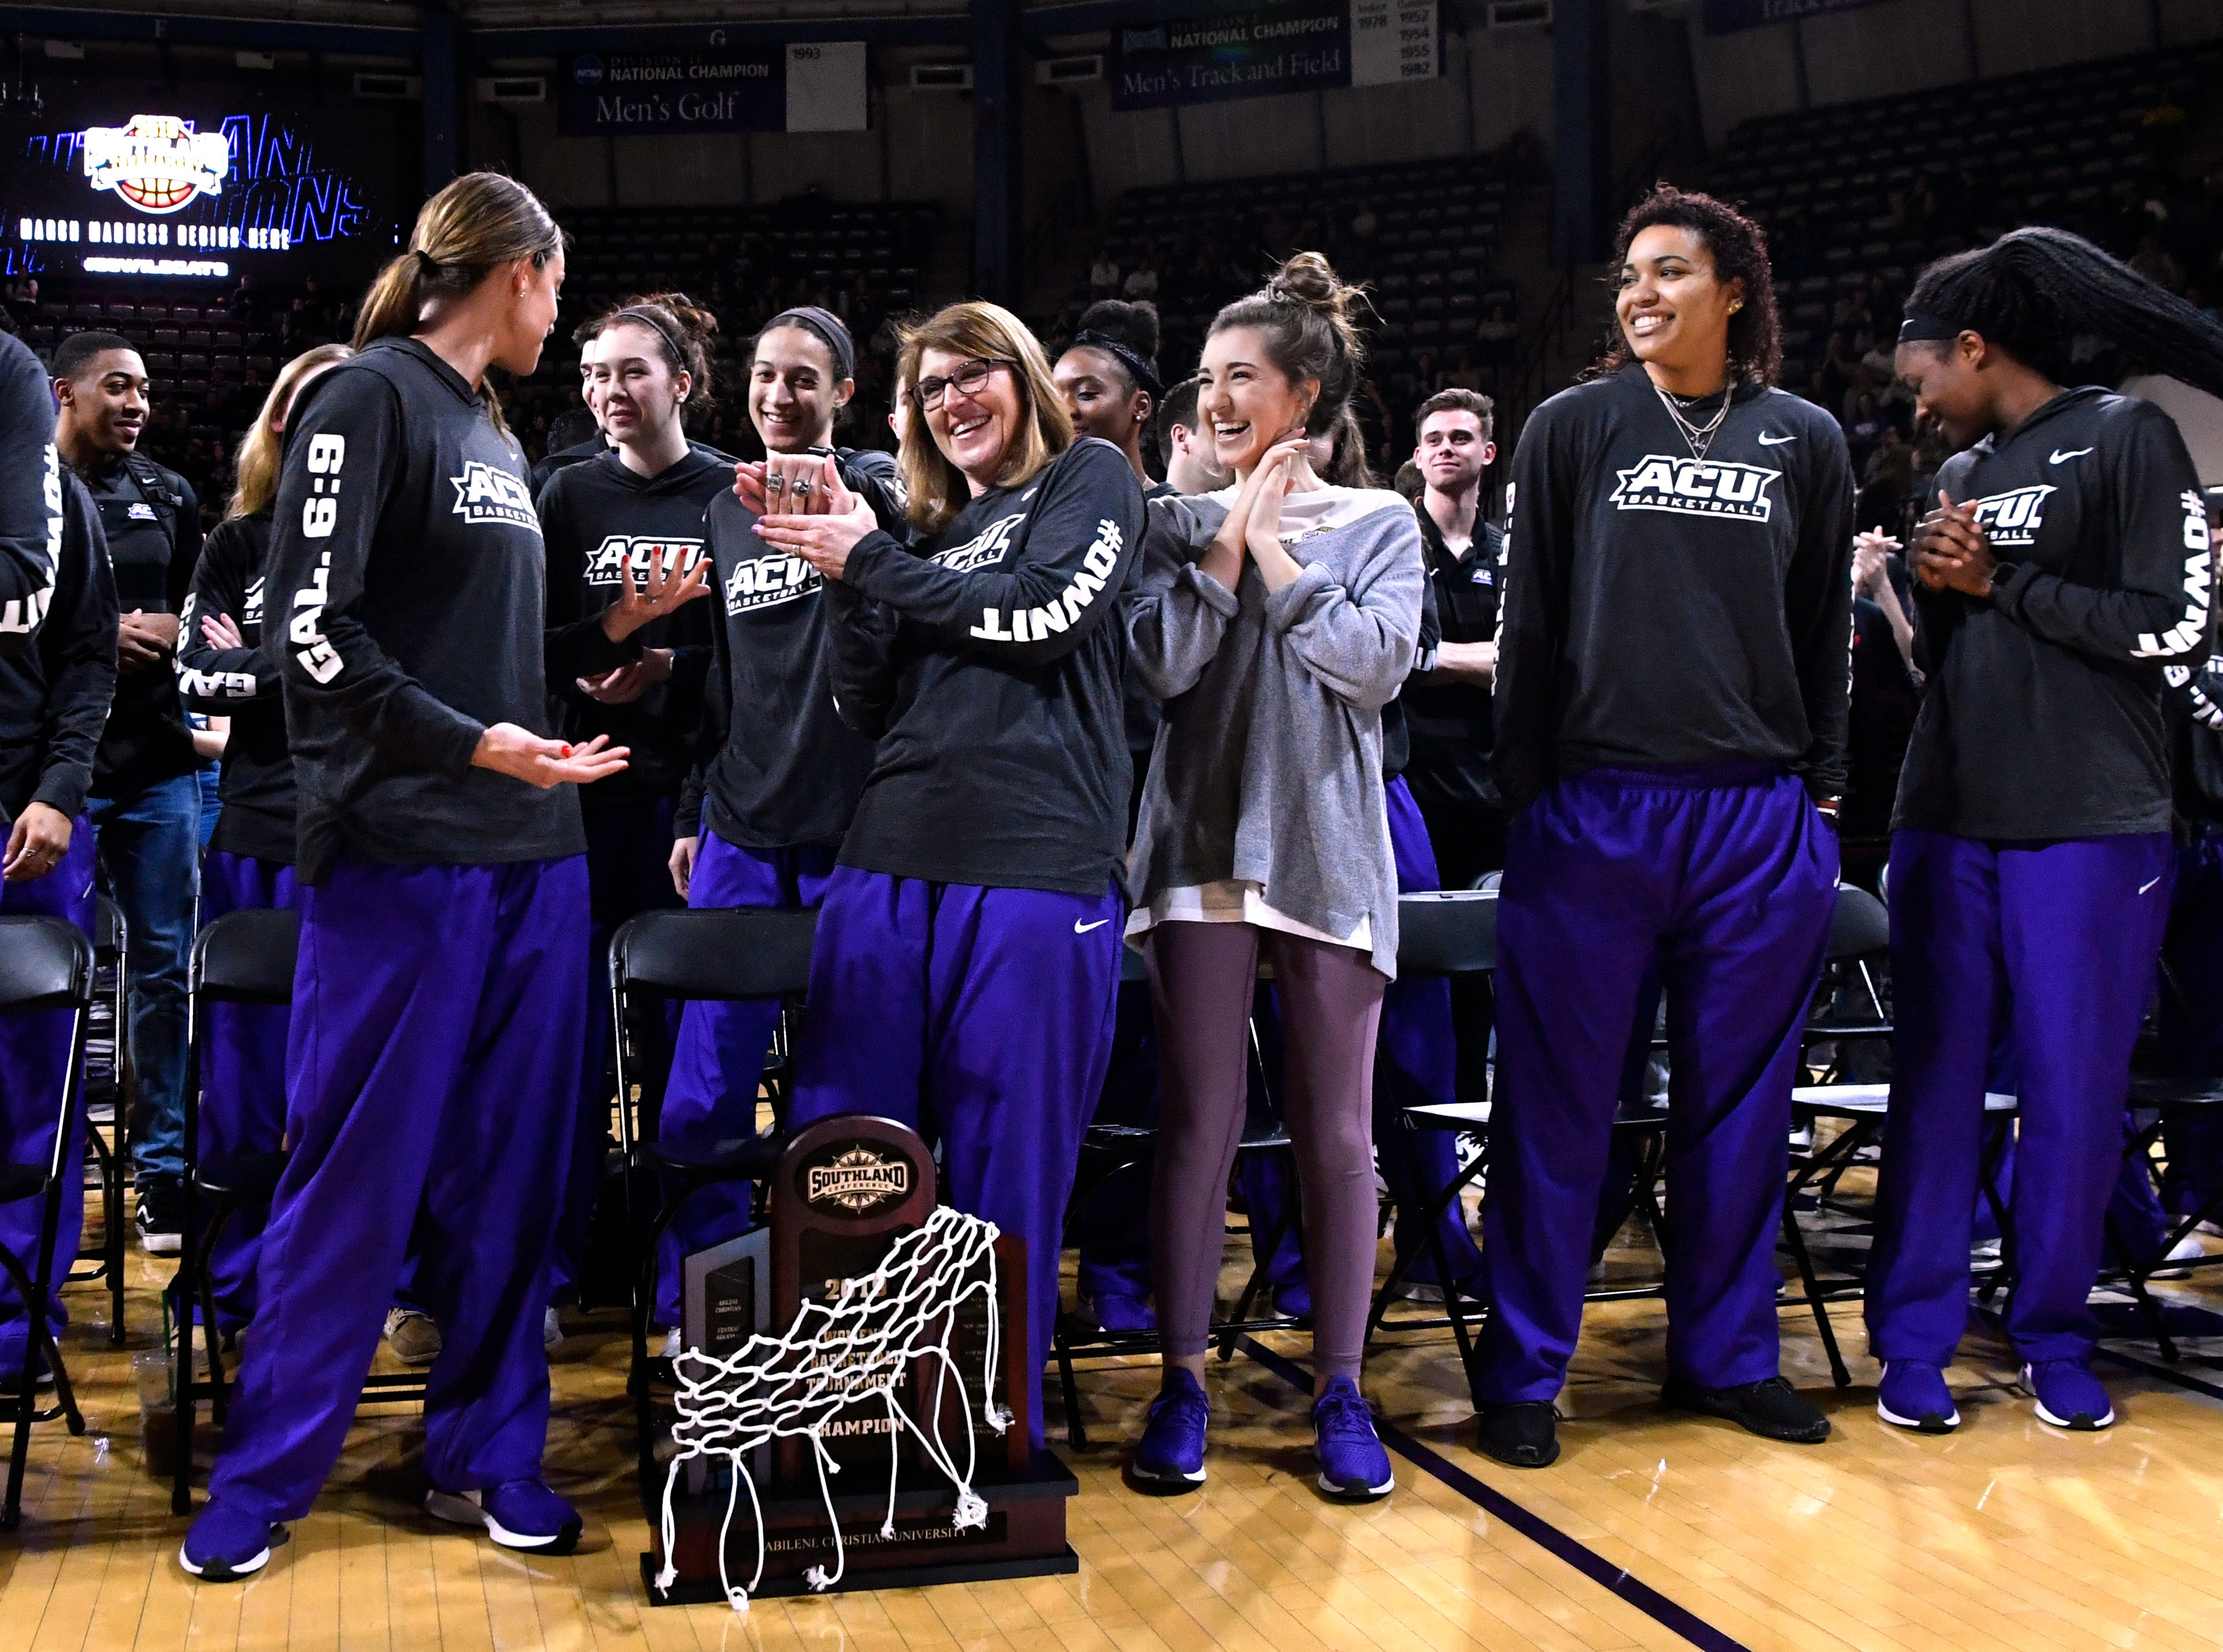 Abilene Christian University Women's Basketball Coach Julie Goodenough acknowledges the applause during Chapel at Moody Coliseum Monday March 18, 2019. Both men's and women's basketball teams were honored for earning bids to play in the upcoming NCAA tournaments.